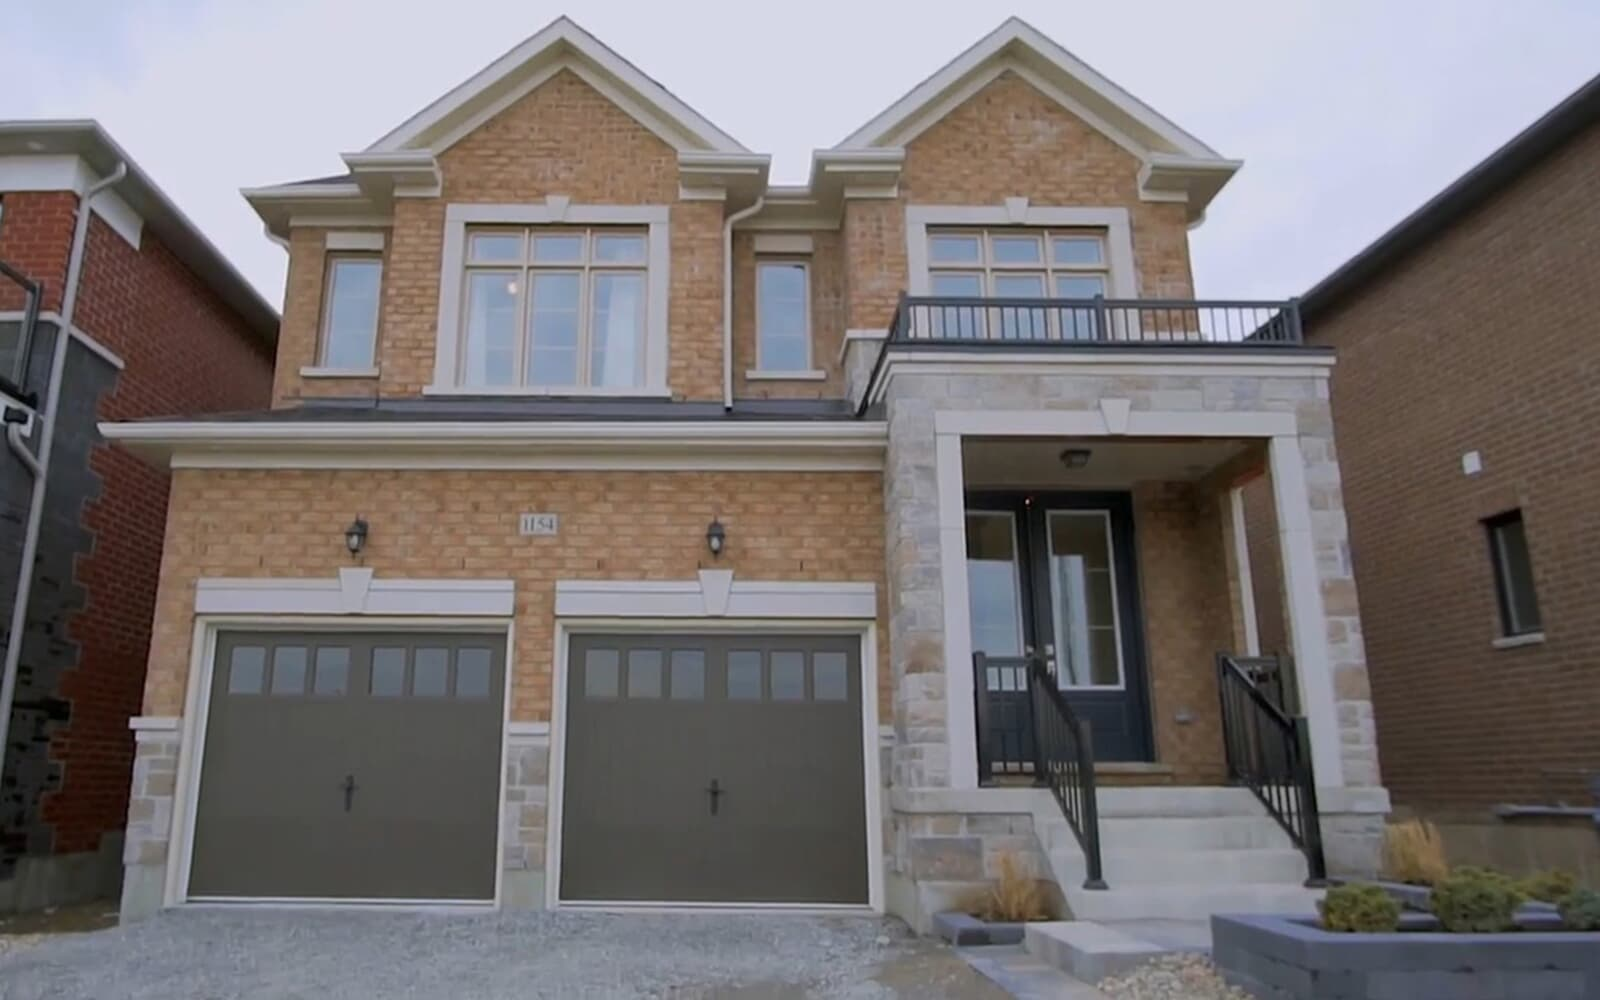 Liverpool C Model Home | Liverpool at New Seaton in Pickering | Pickering, ON | Brookfield Residential